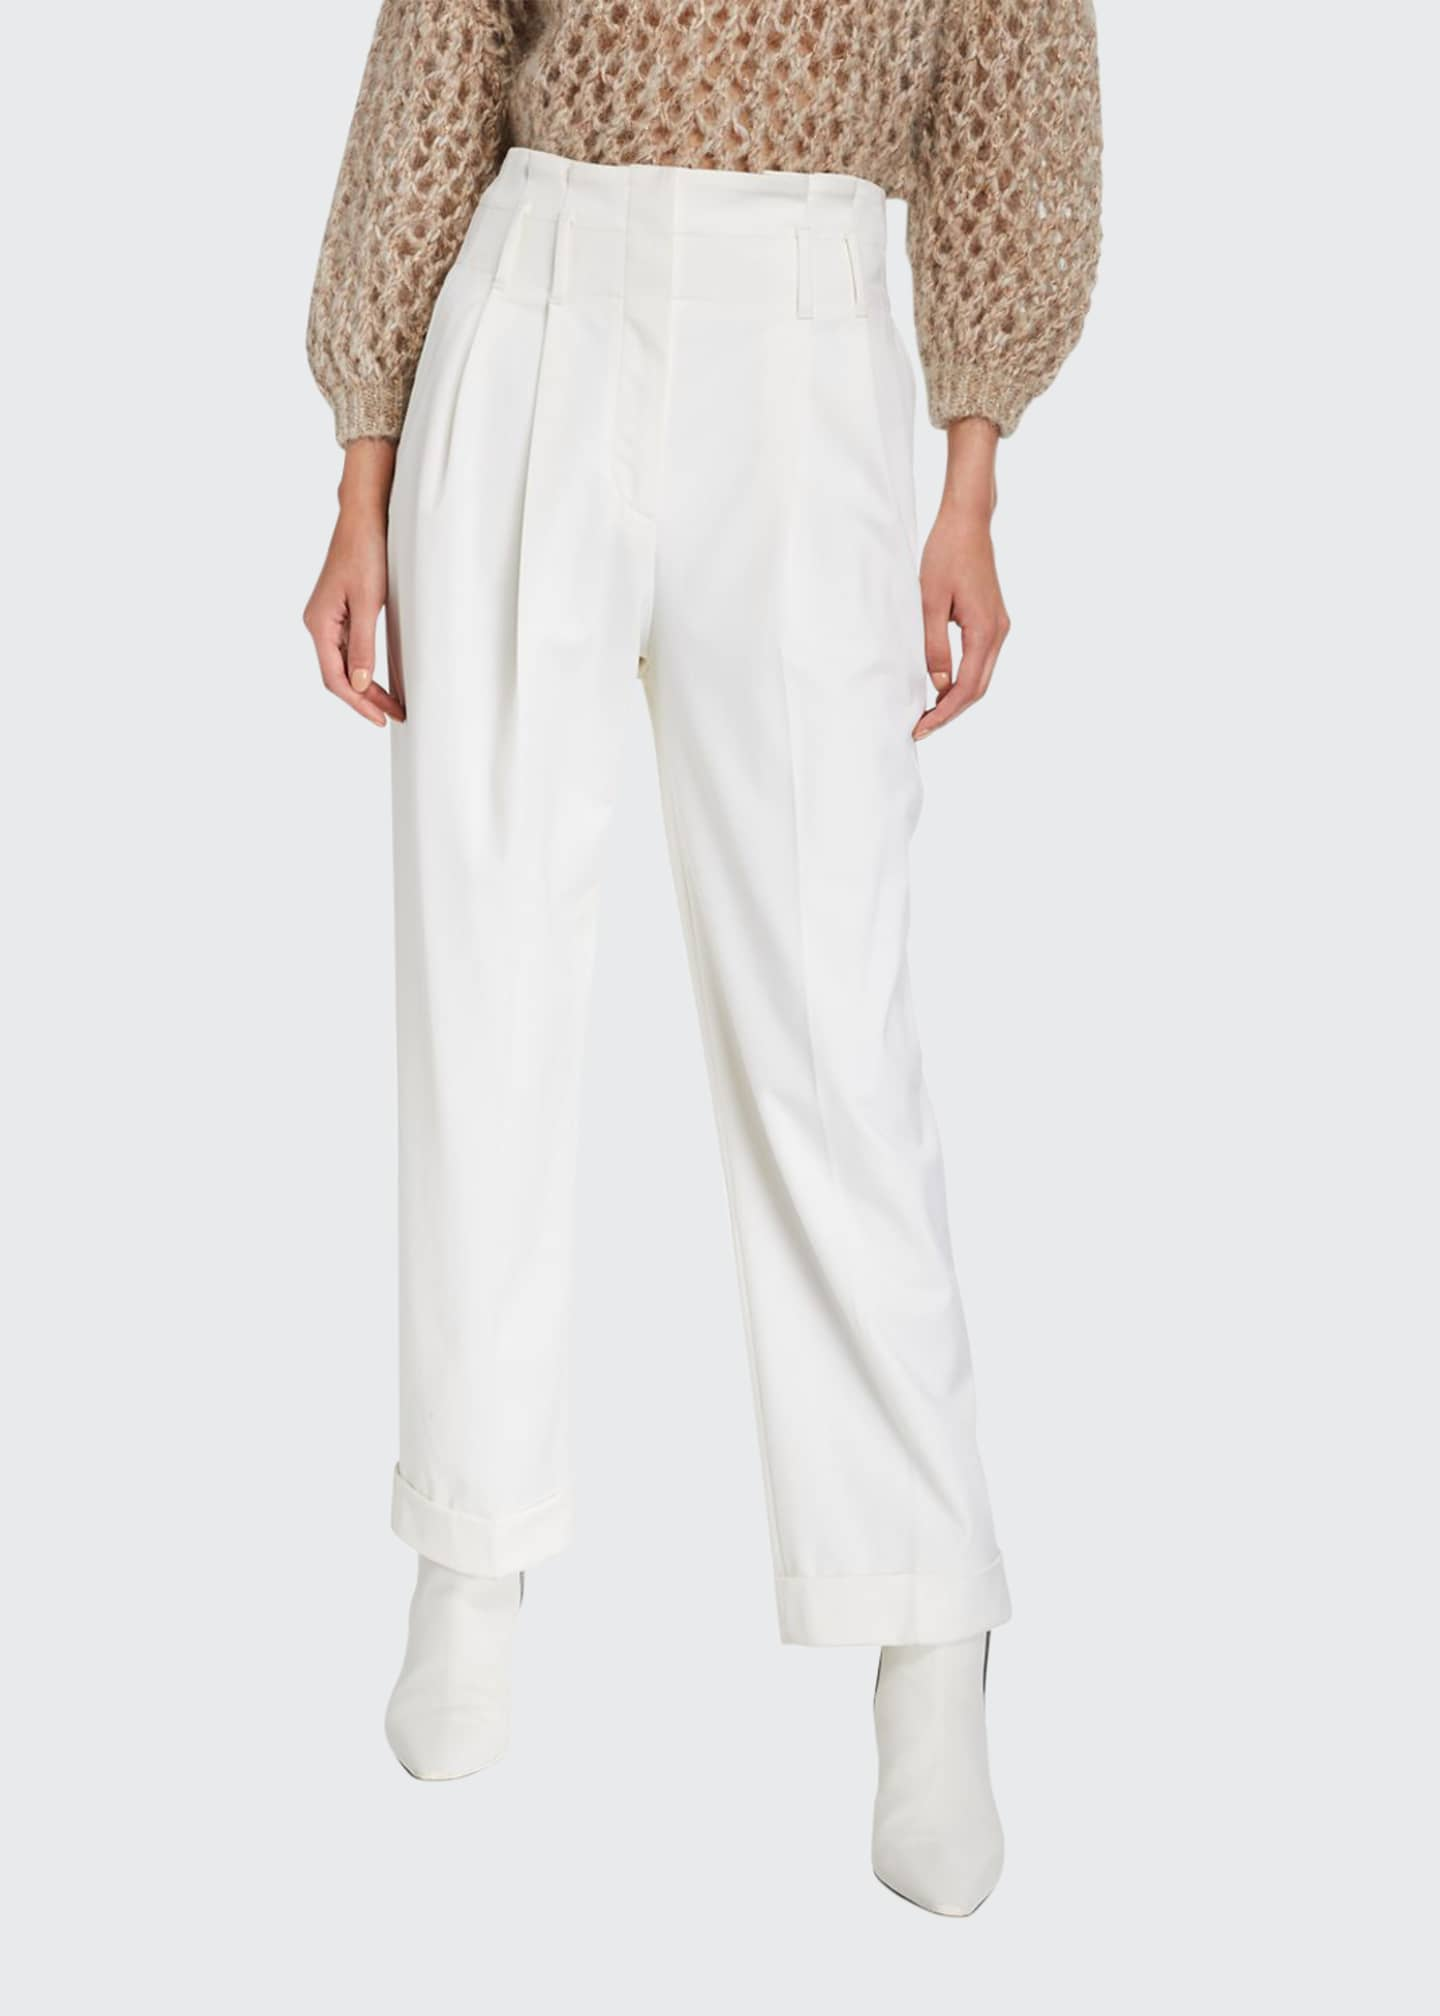 Brunello Cucinelli Wool Pleated Full-Leg Pants